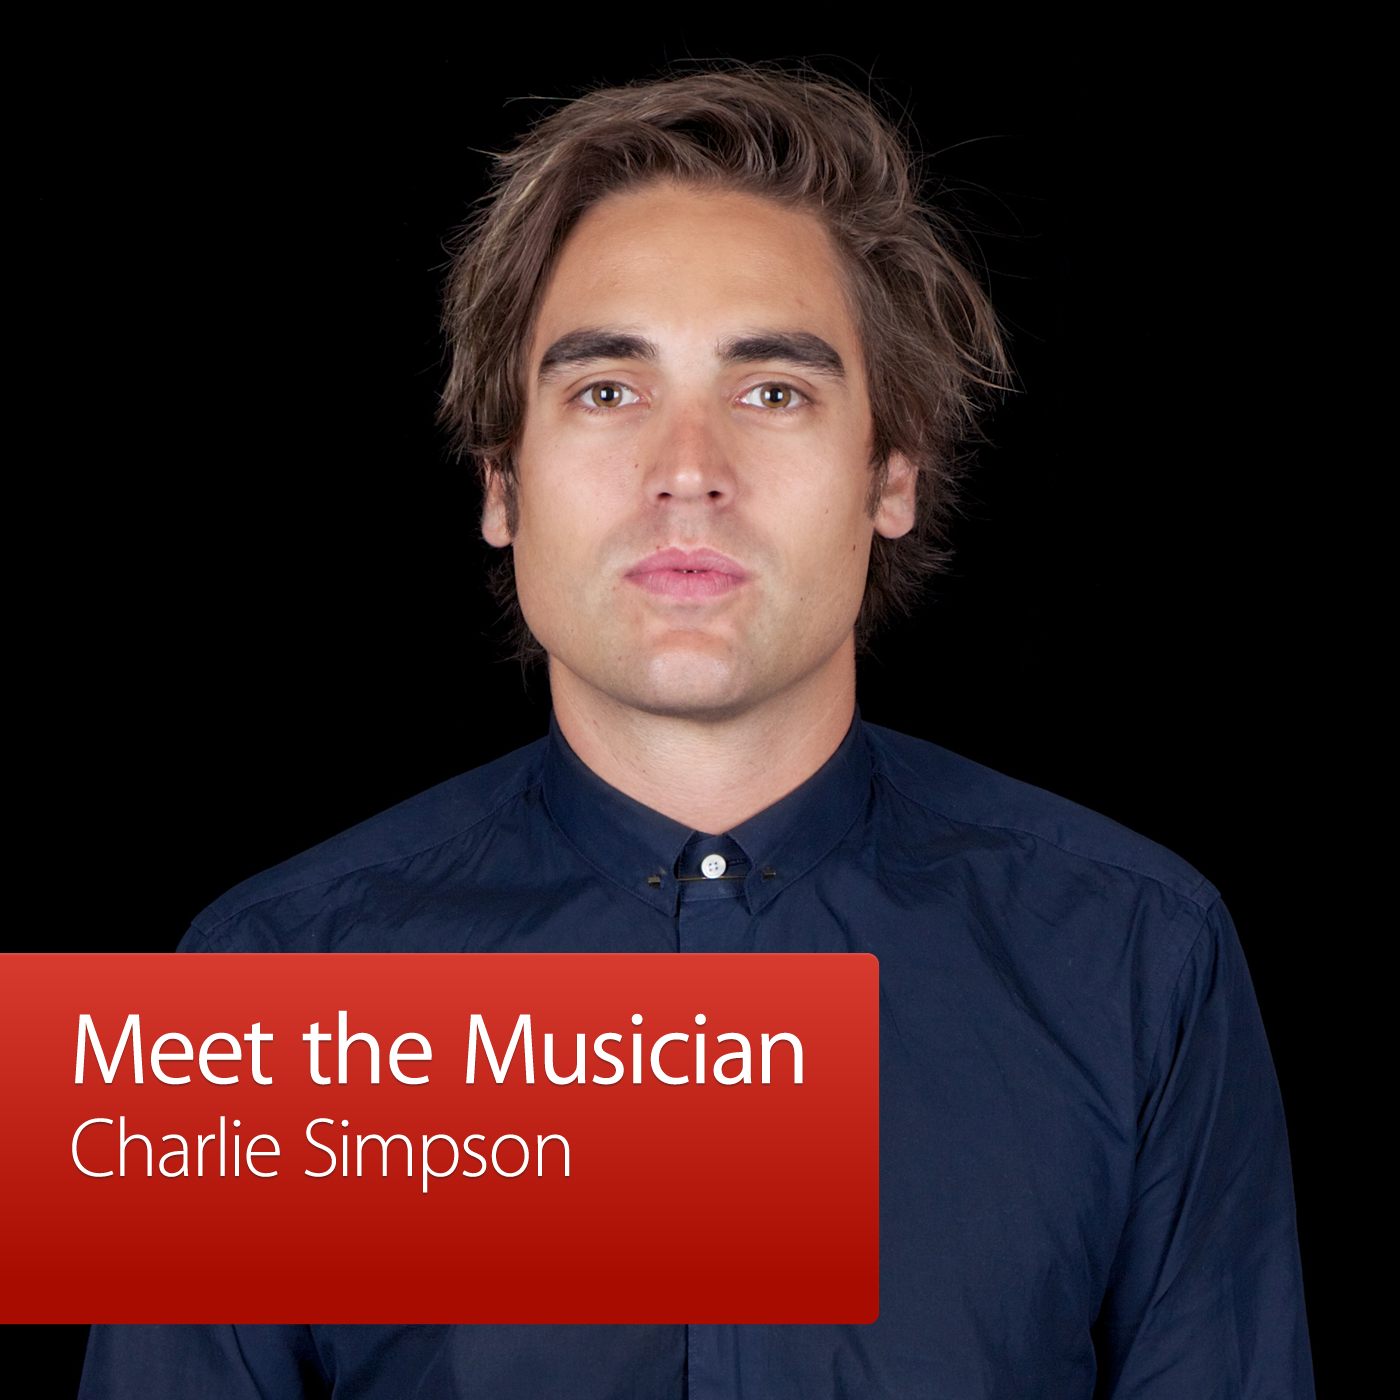 Charlie Simpson: Meet the Musician